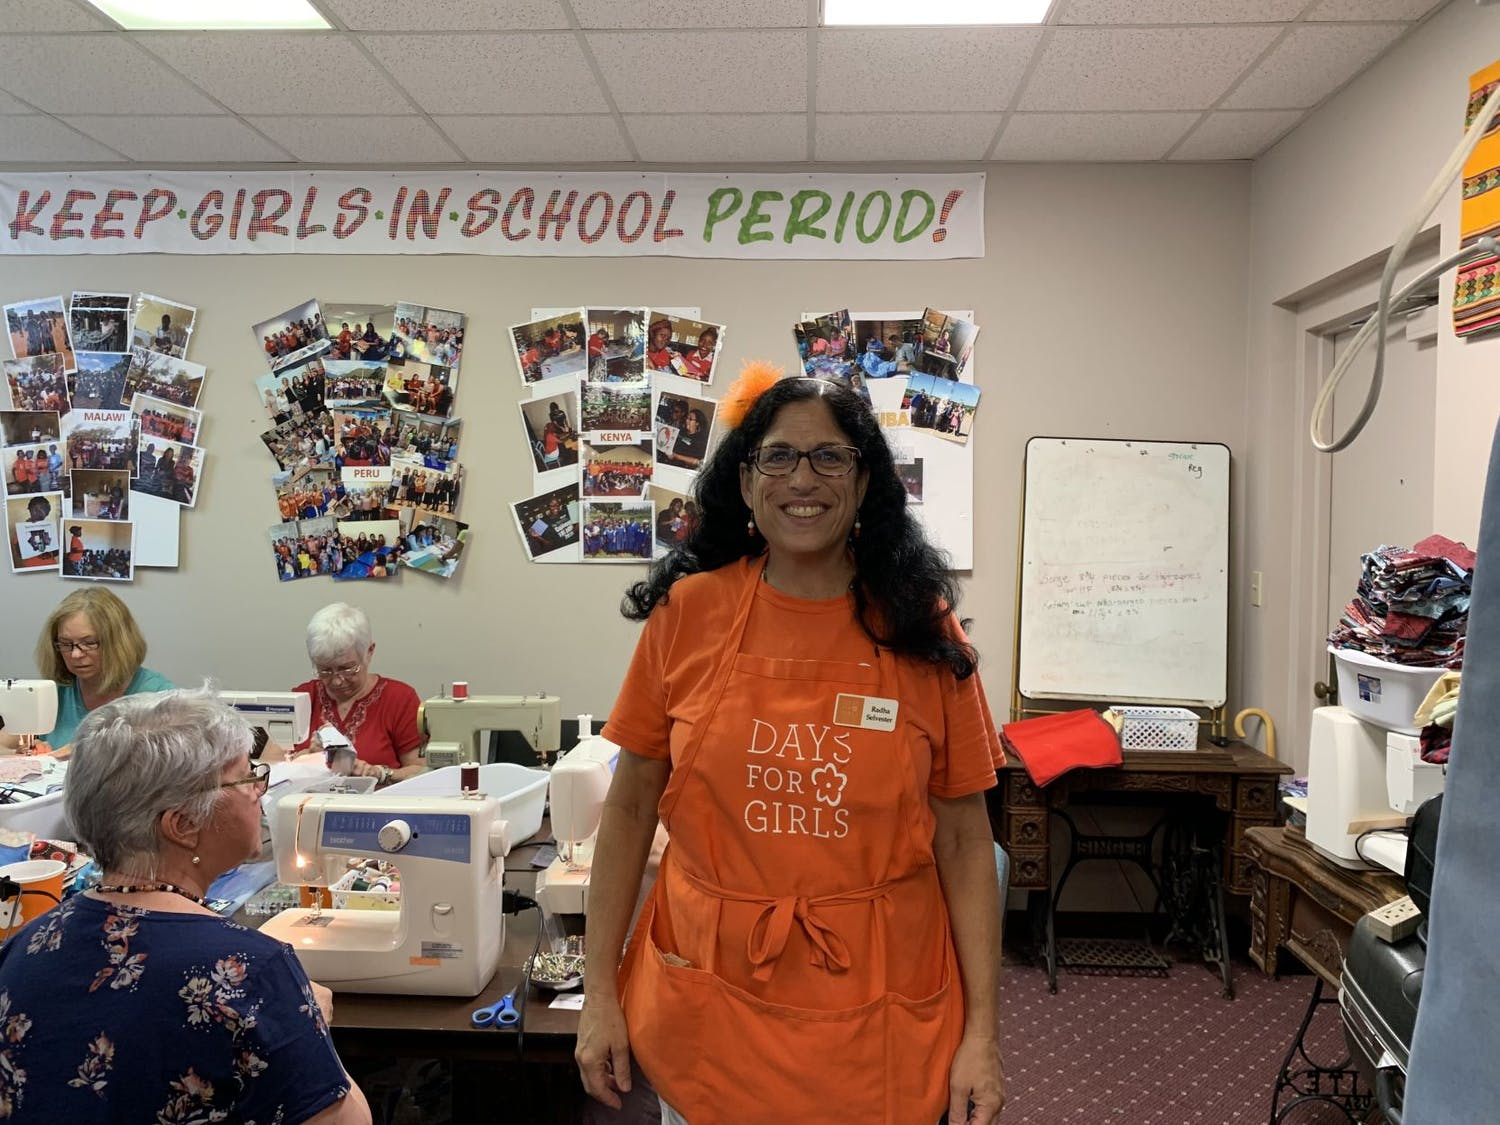 Radha Selvester, chapter chair of Days for Girls Alachua, oversees the order of operations of the Memorial Day kit assembling event.